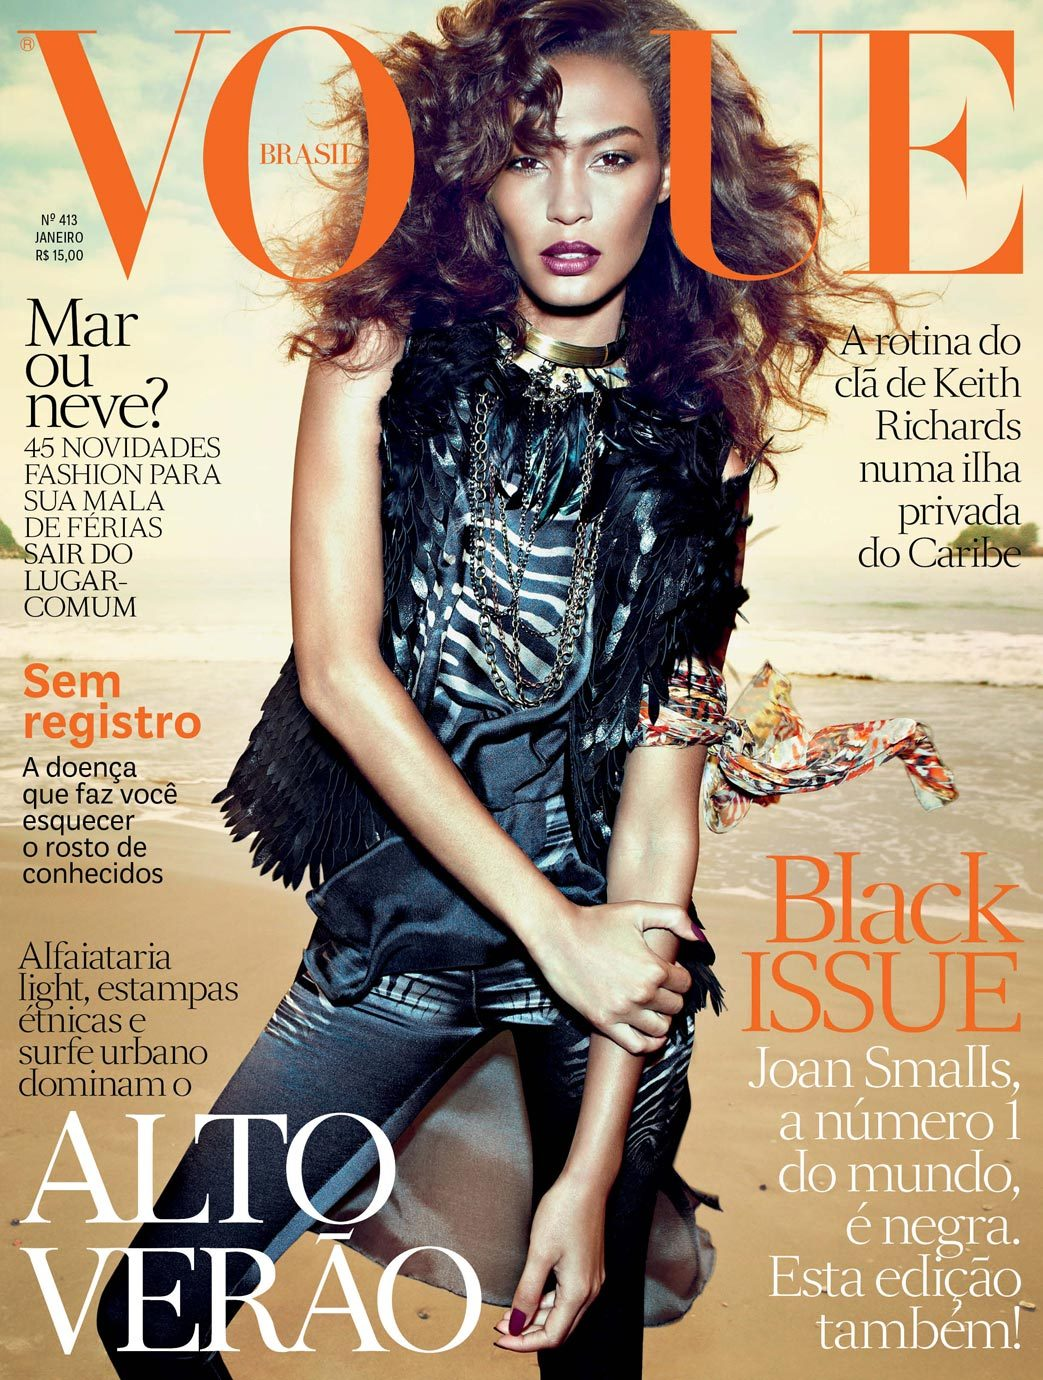 Joan Smalls for Vogue Brazil January 2013.